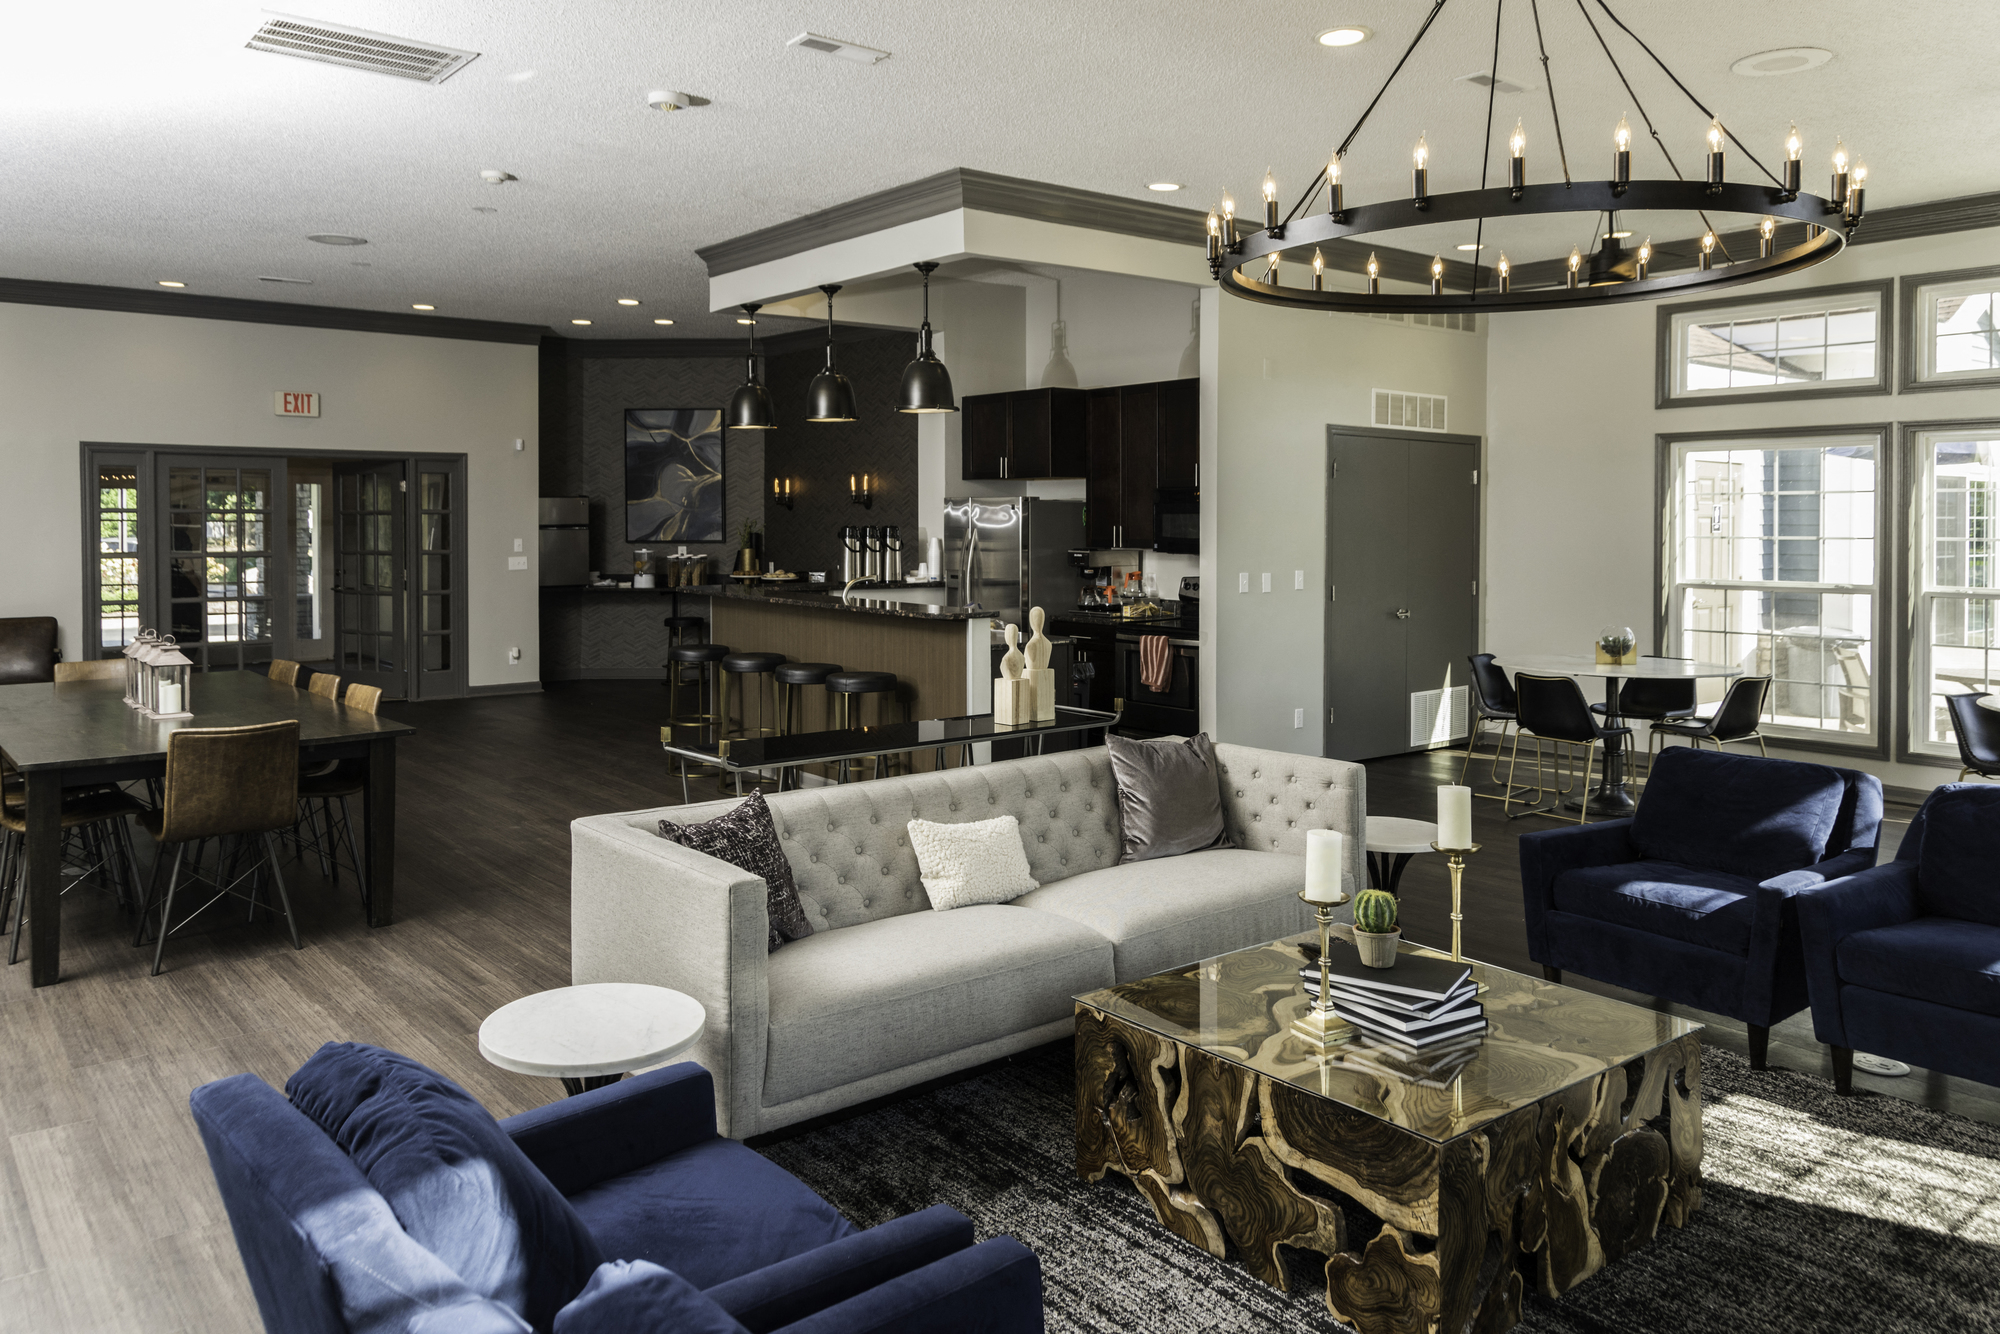 Clubhouse with Upgraded Interiors at Fairlane Woods Apartments, Dearborn, Michigan